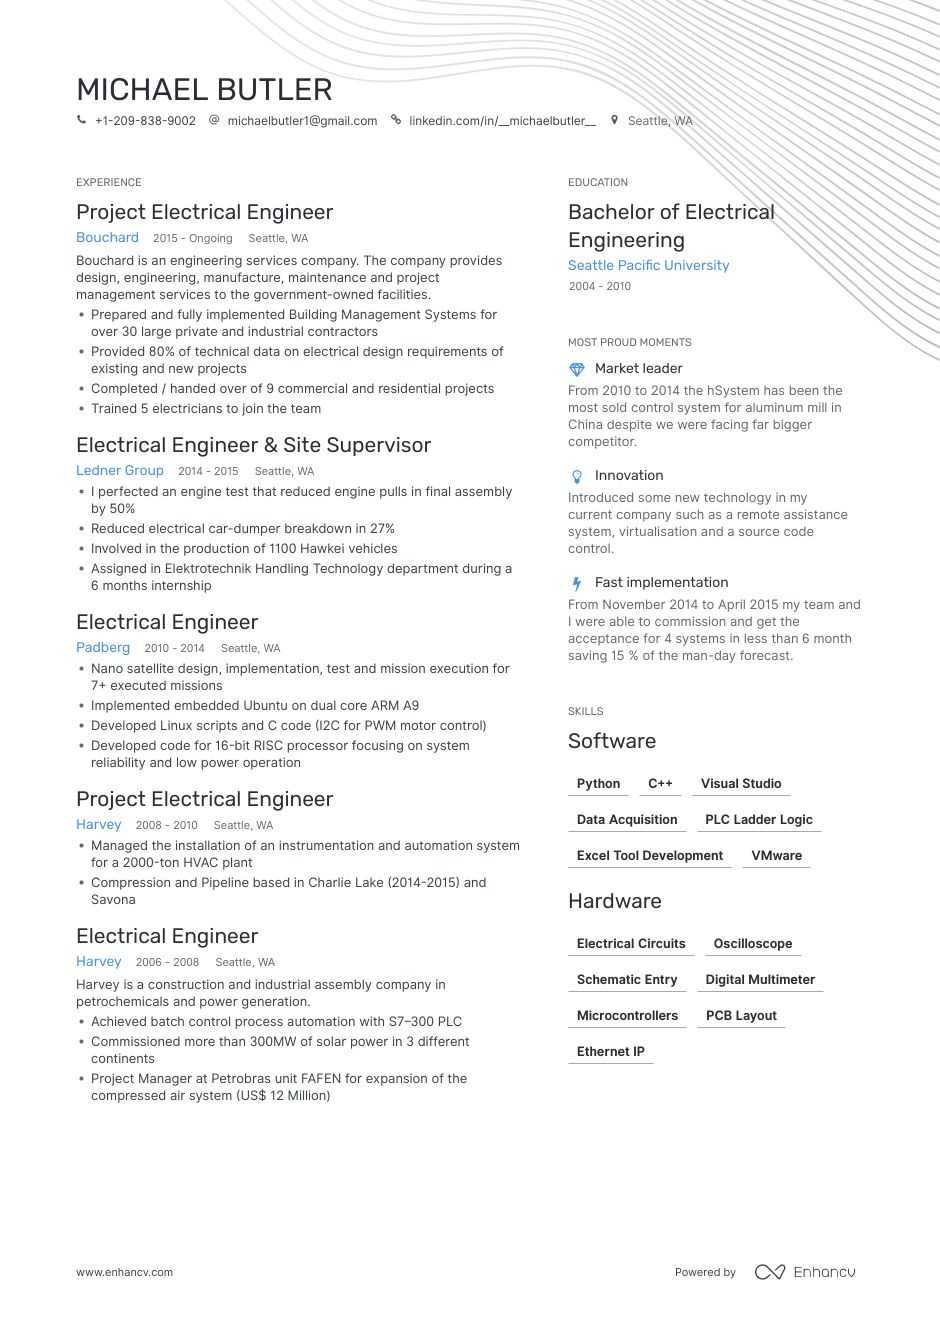 electrical engineer resume examples pro tips featured enhancv headline for fresher Resume Resume Headline For Fresher Electrical Engineer